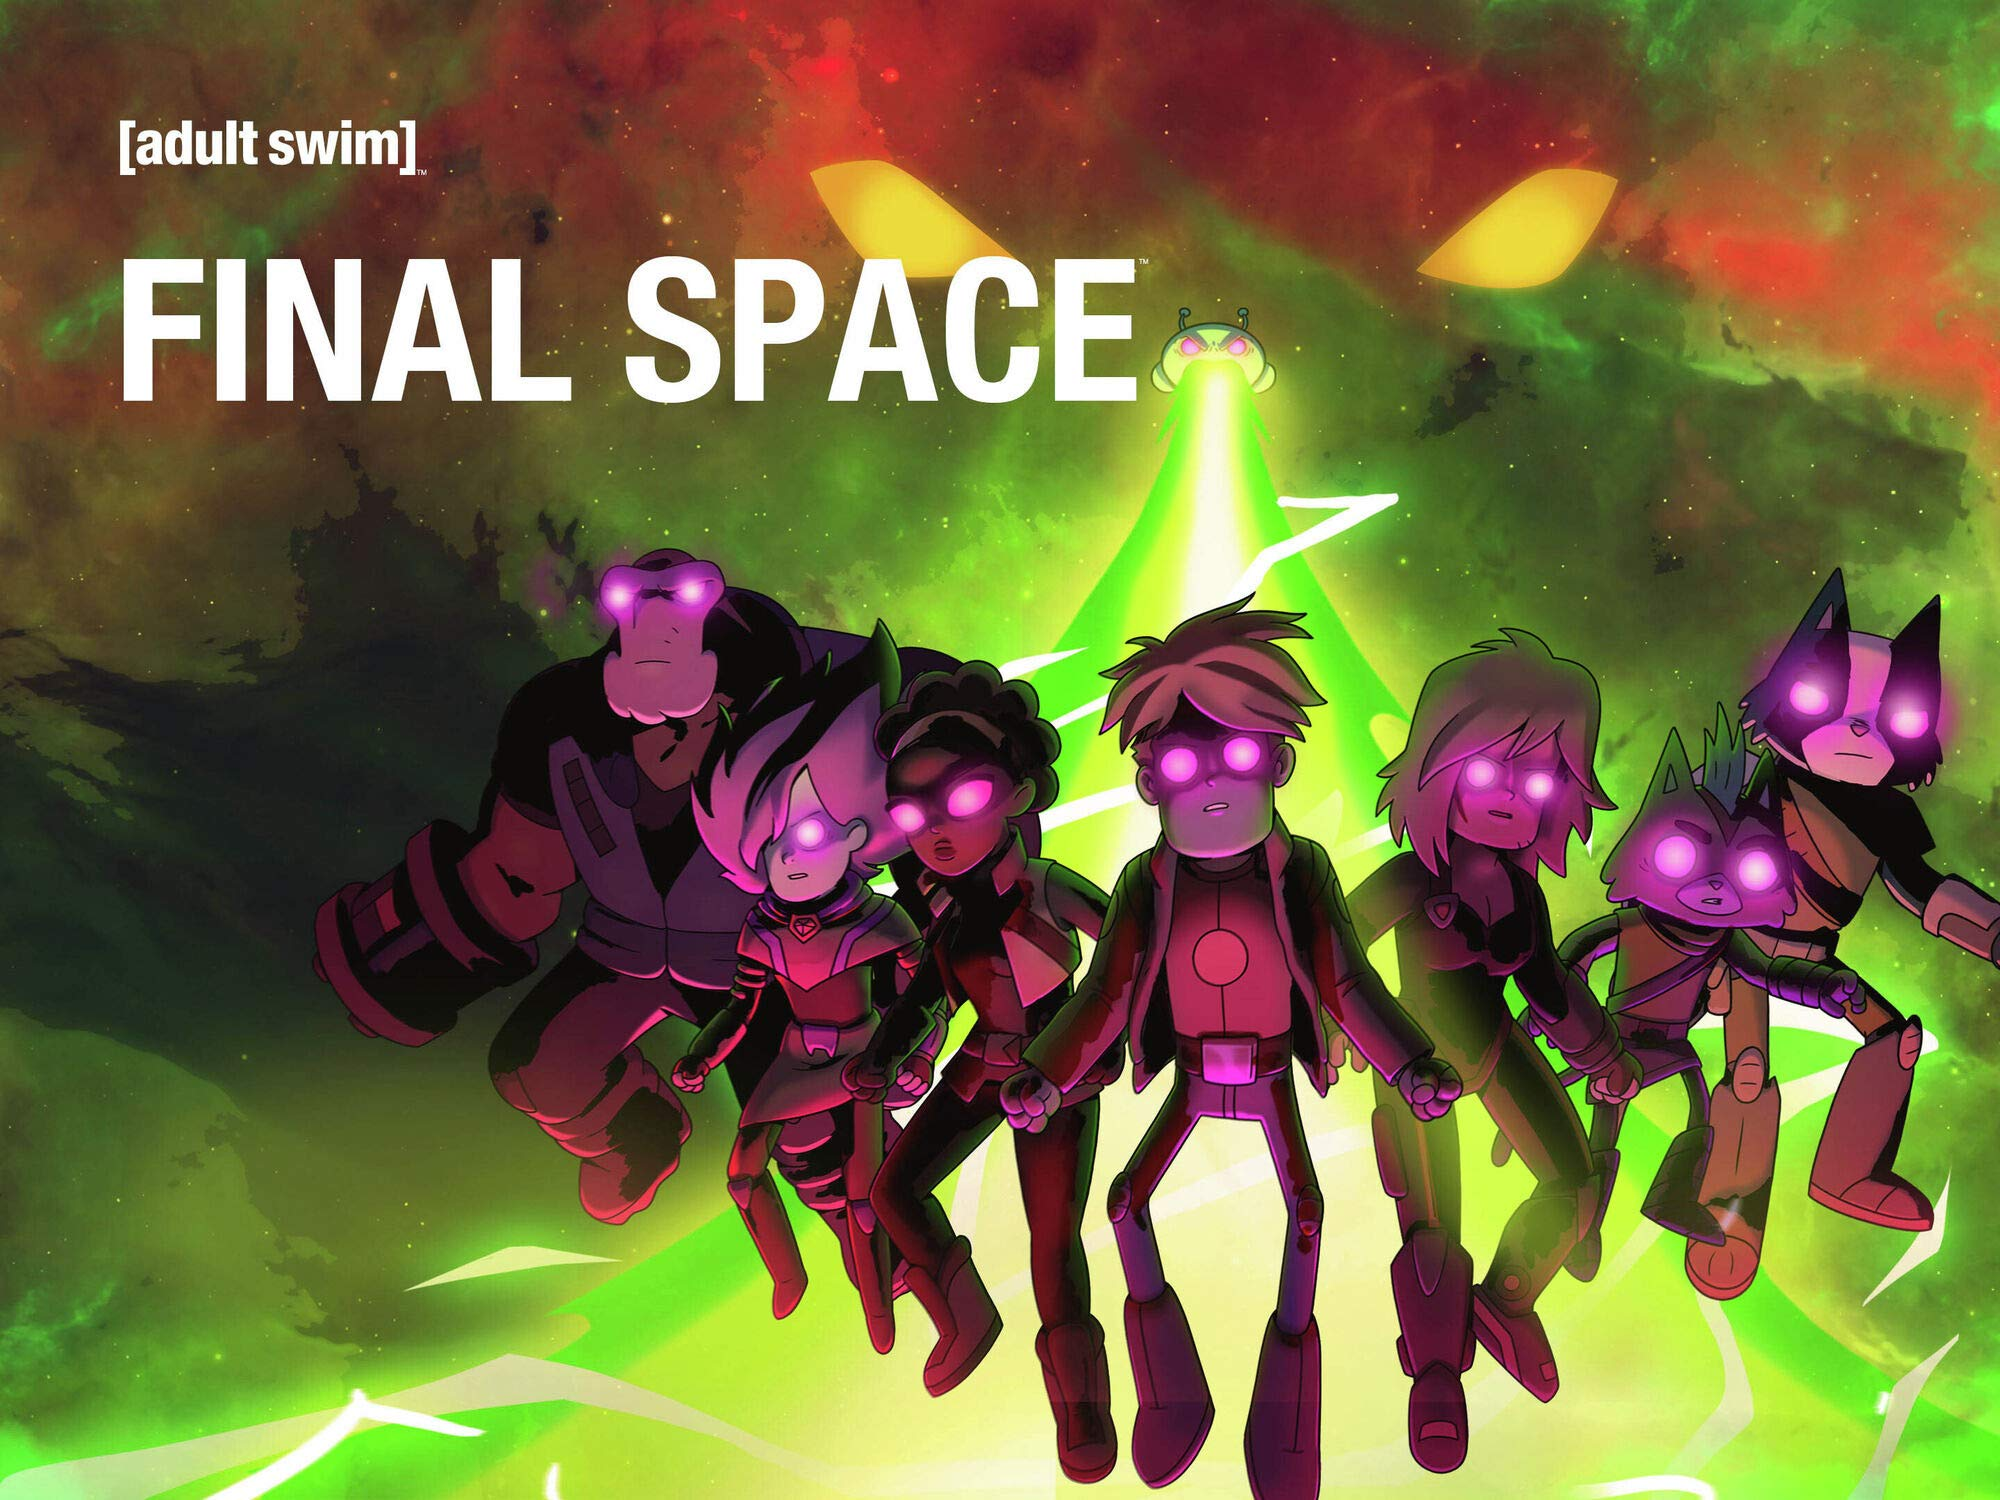 Final Space season 3 episode 5 released date and spoilers